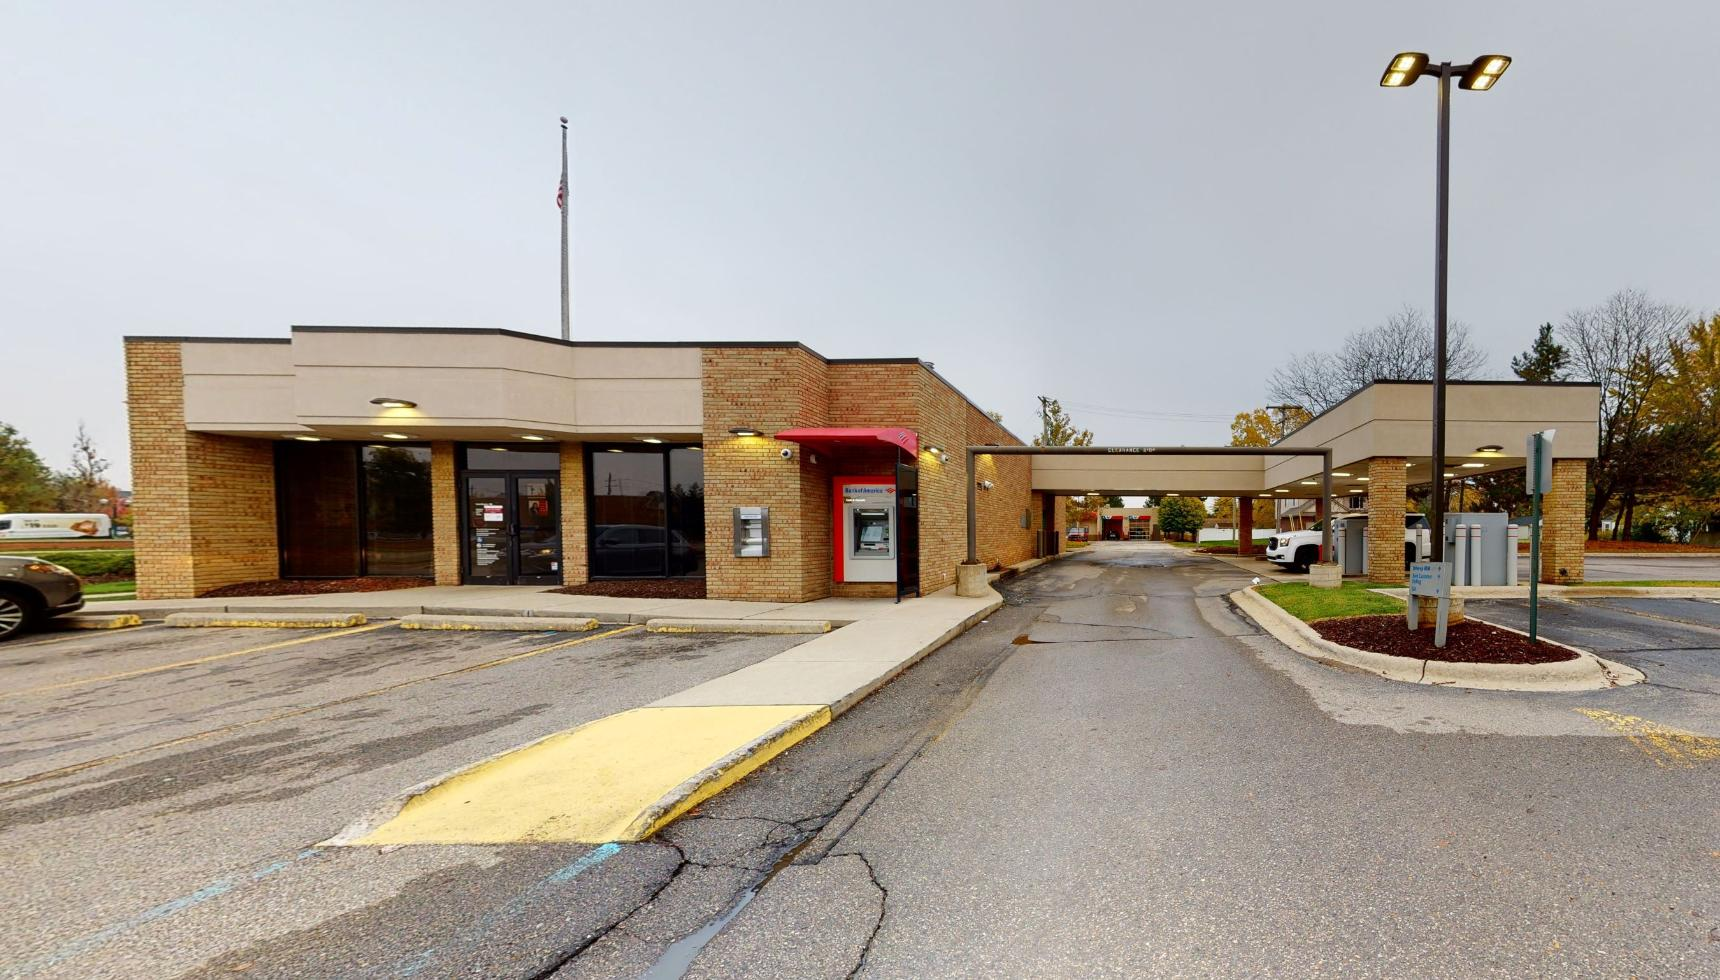 Bank of America financial center with drive-thru ATM | 44101 Ford Rd, Canton, MI 48187